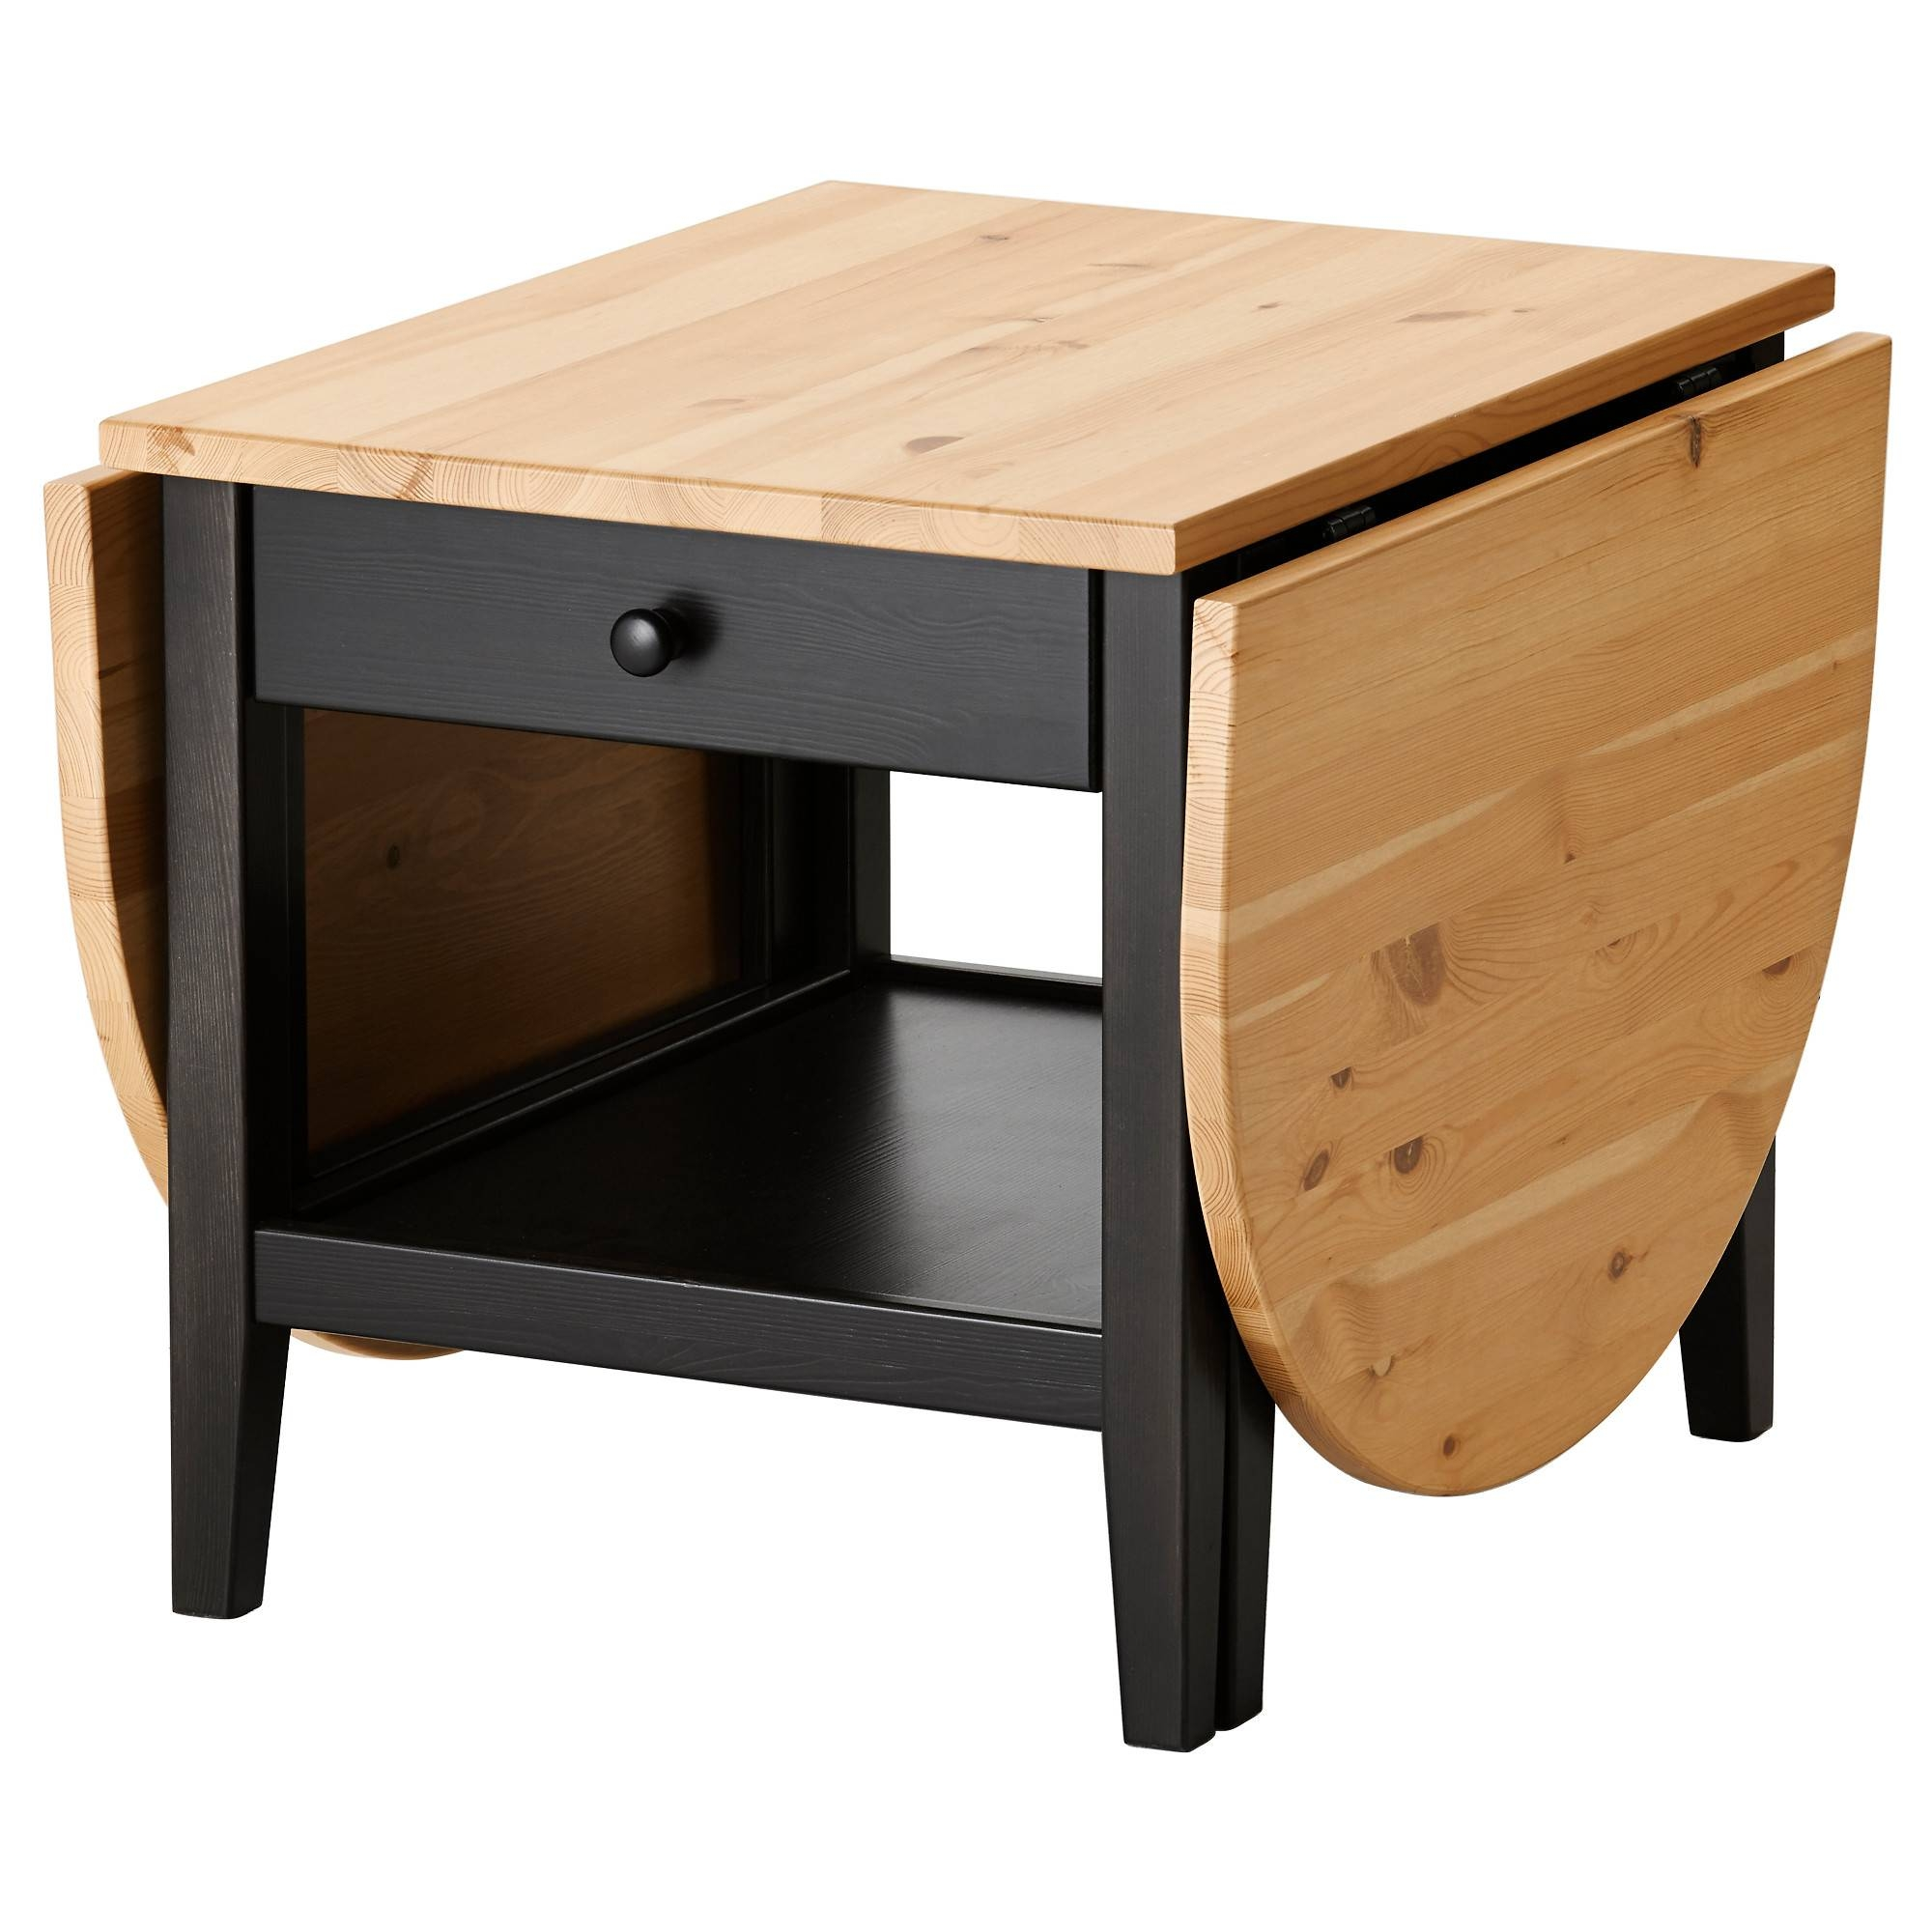 Coffee Tables & Console Tables - Ikea in Low Coffee Tables With Drawers (Image 8 of 30)